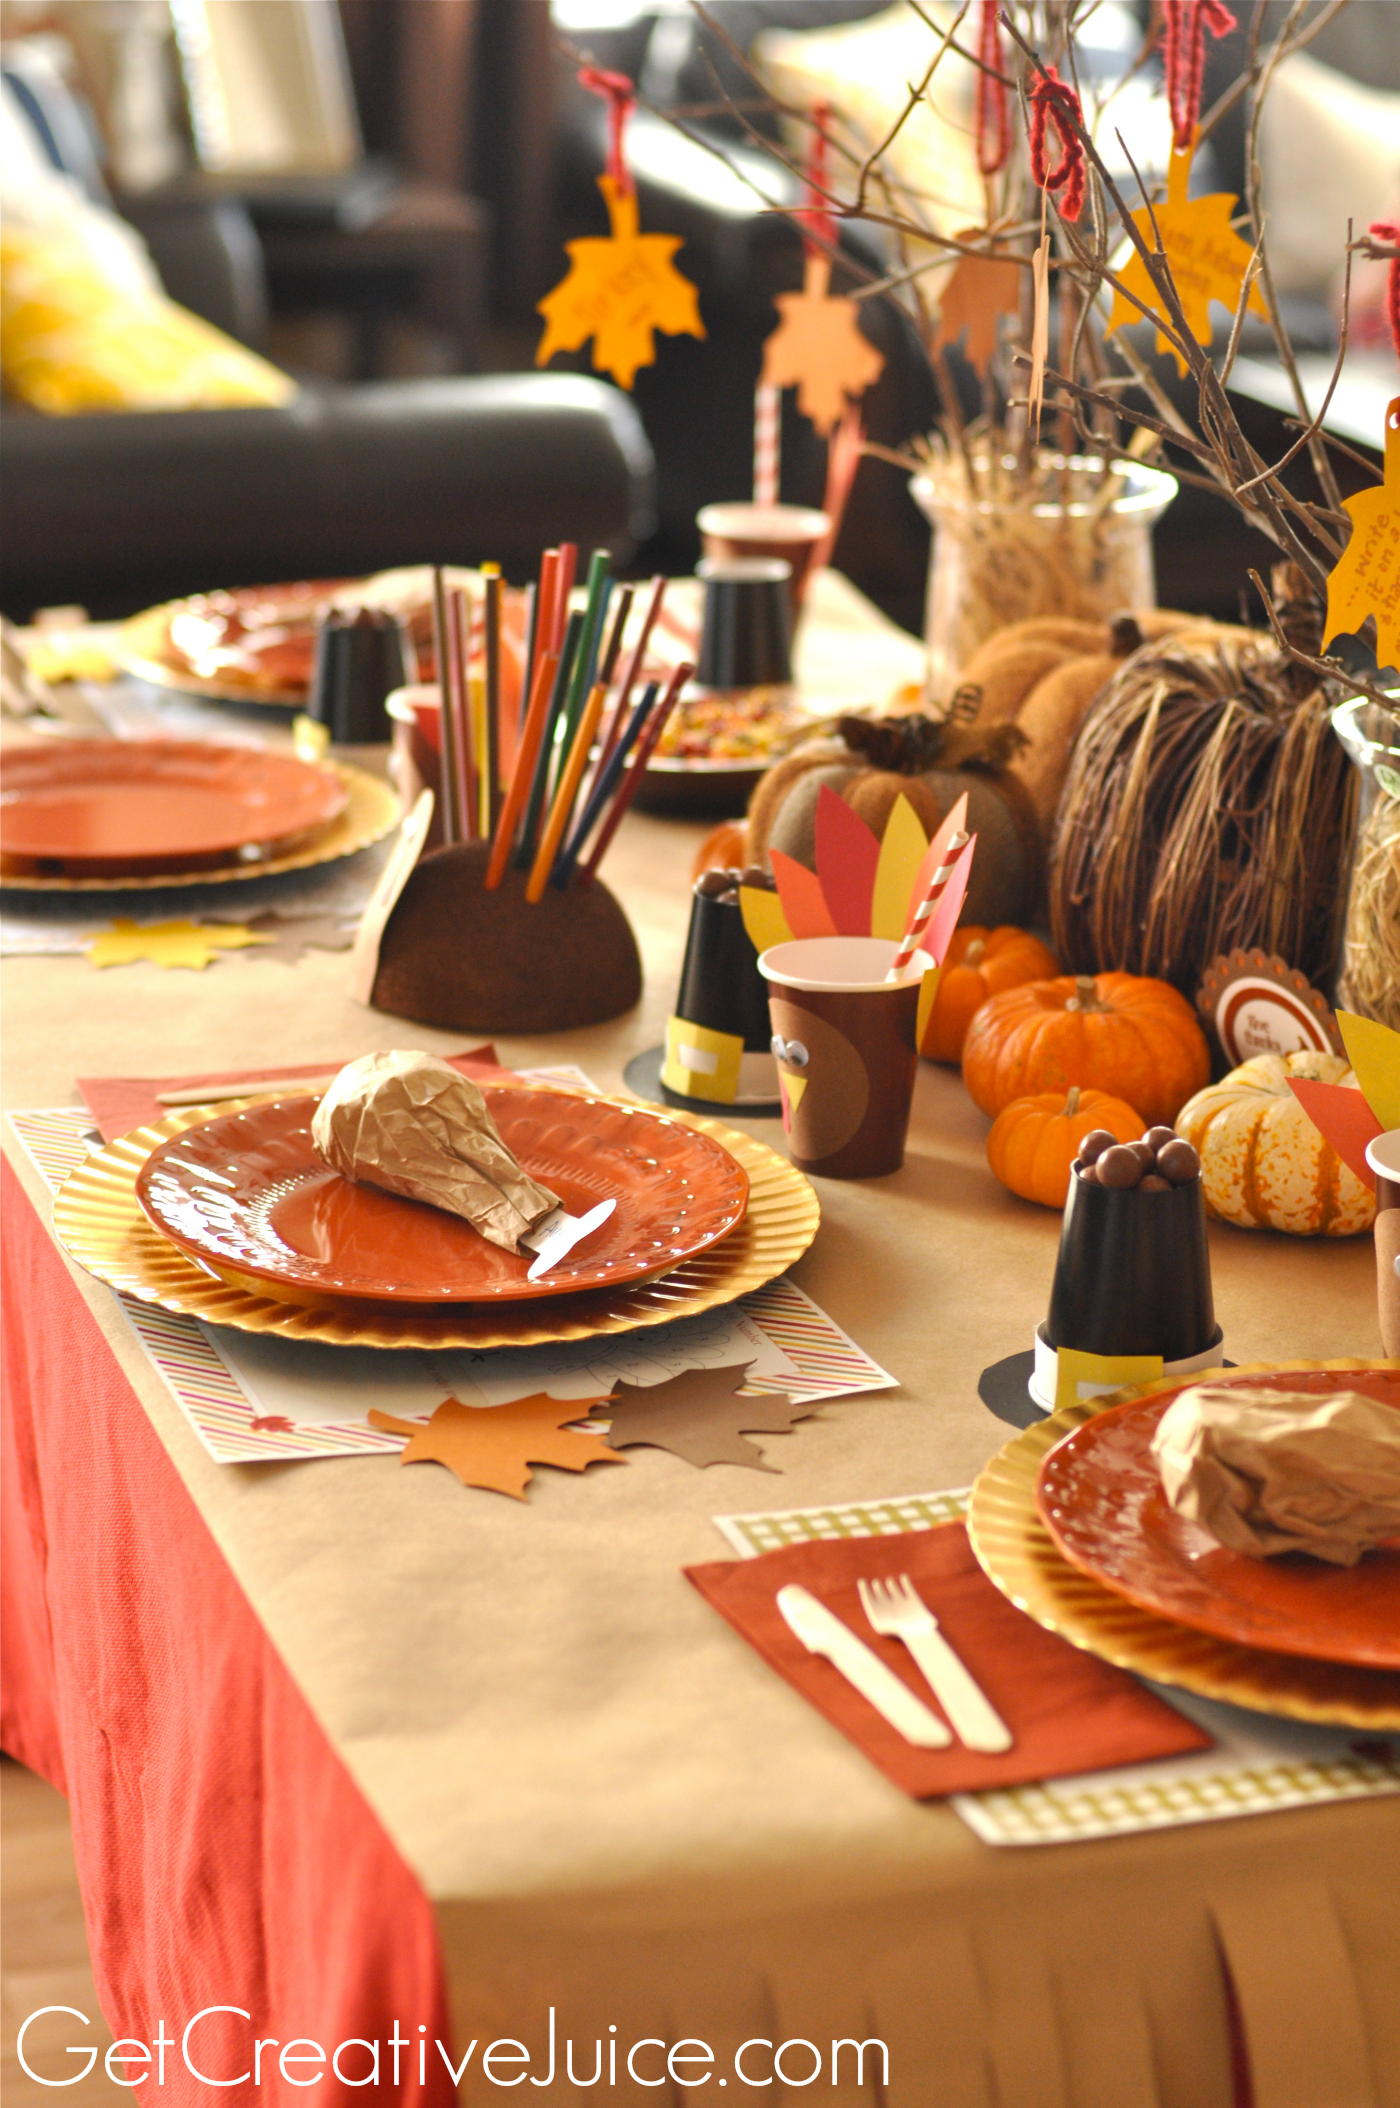 Thanksgiving Table Ideas easy diy kids thanksgiving table ideas - creative juice